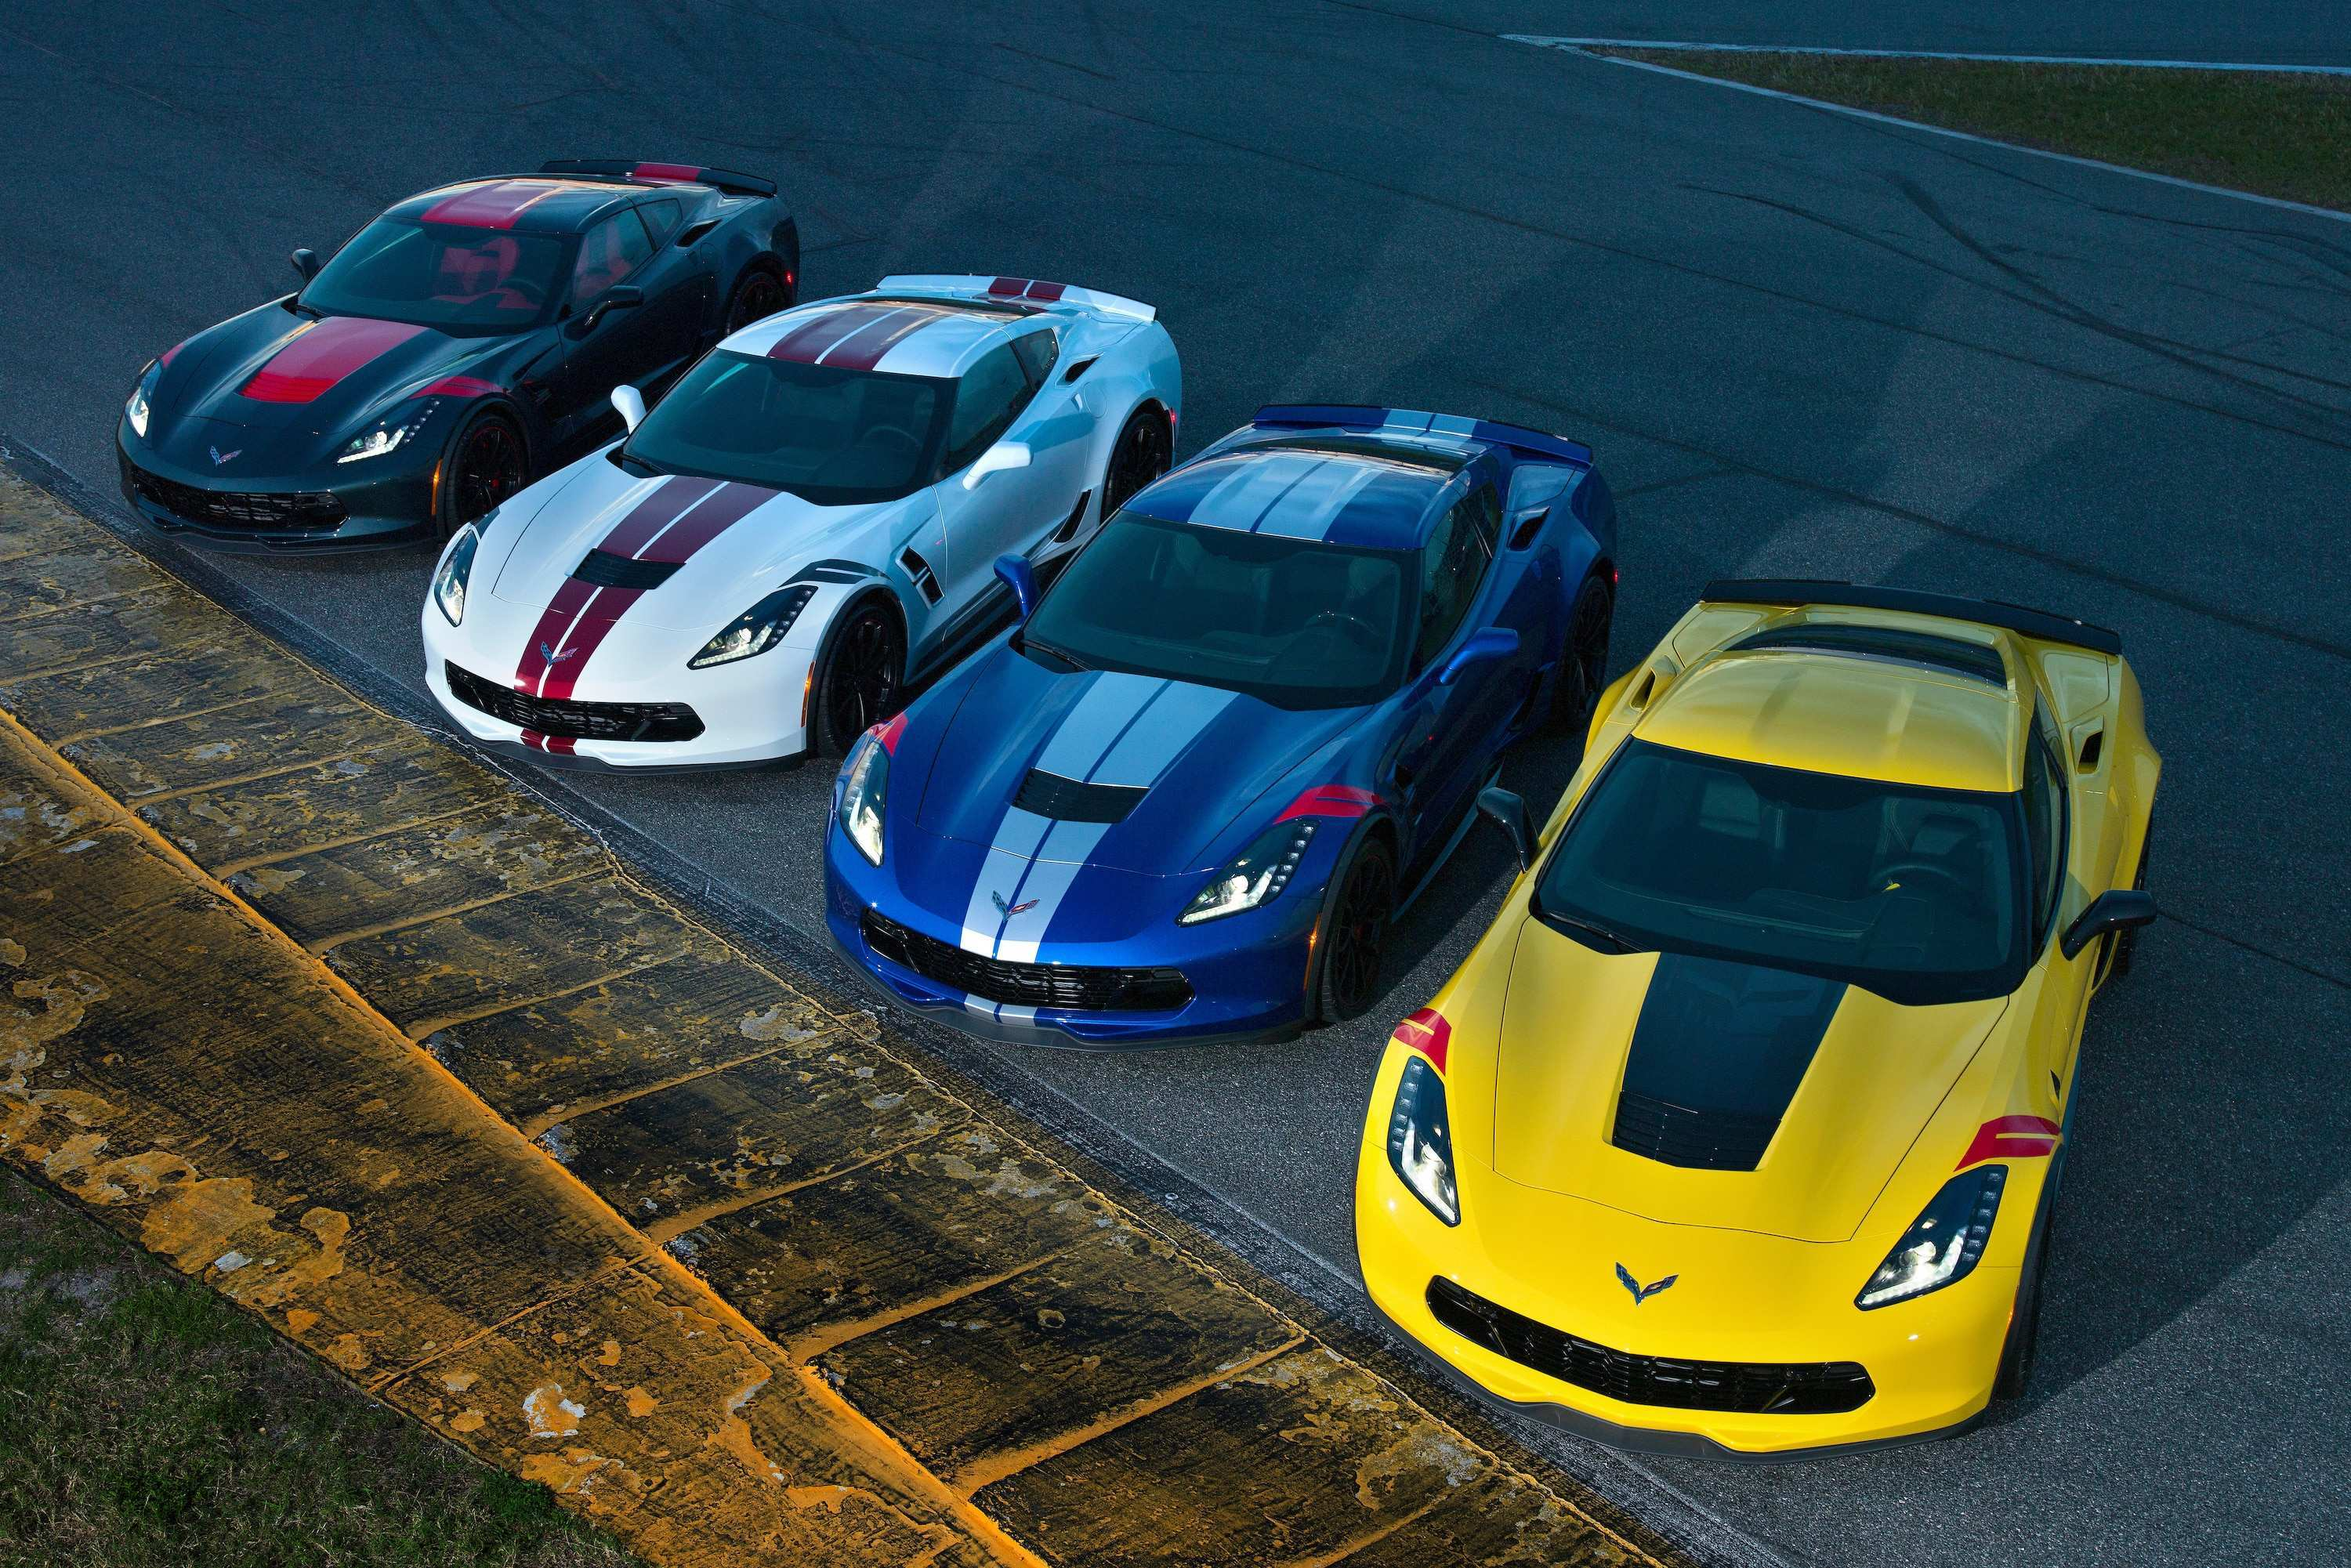 70 The New 2019 Chevrolet Corvette Grand Sport Review Rumor Redesign and Concept by New 2019 Chevrolet Corvette Grand Sport Review Rumor